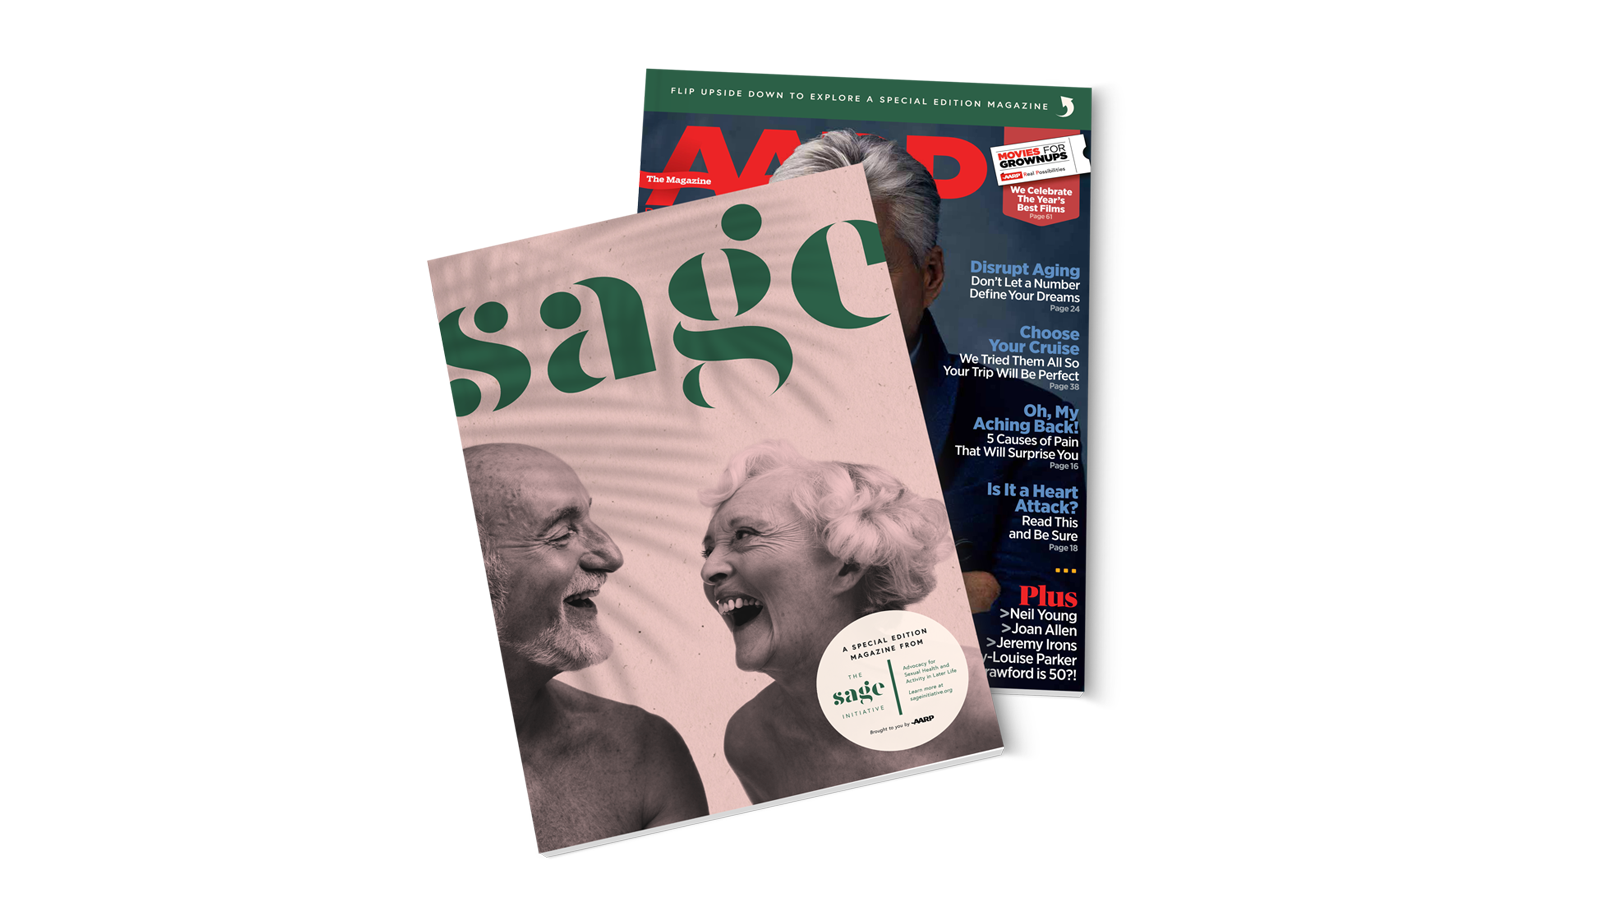 AARP Magazine x The Sage Initiative Special Edition Cover